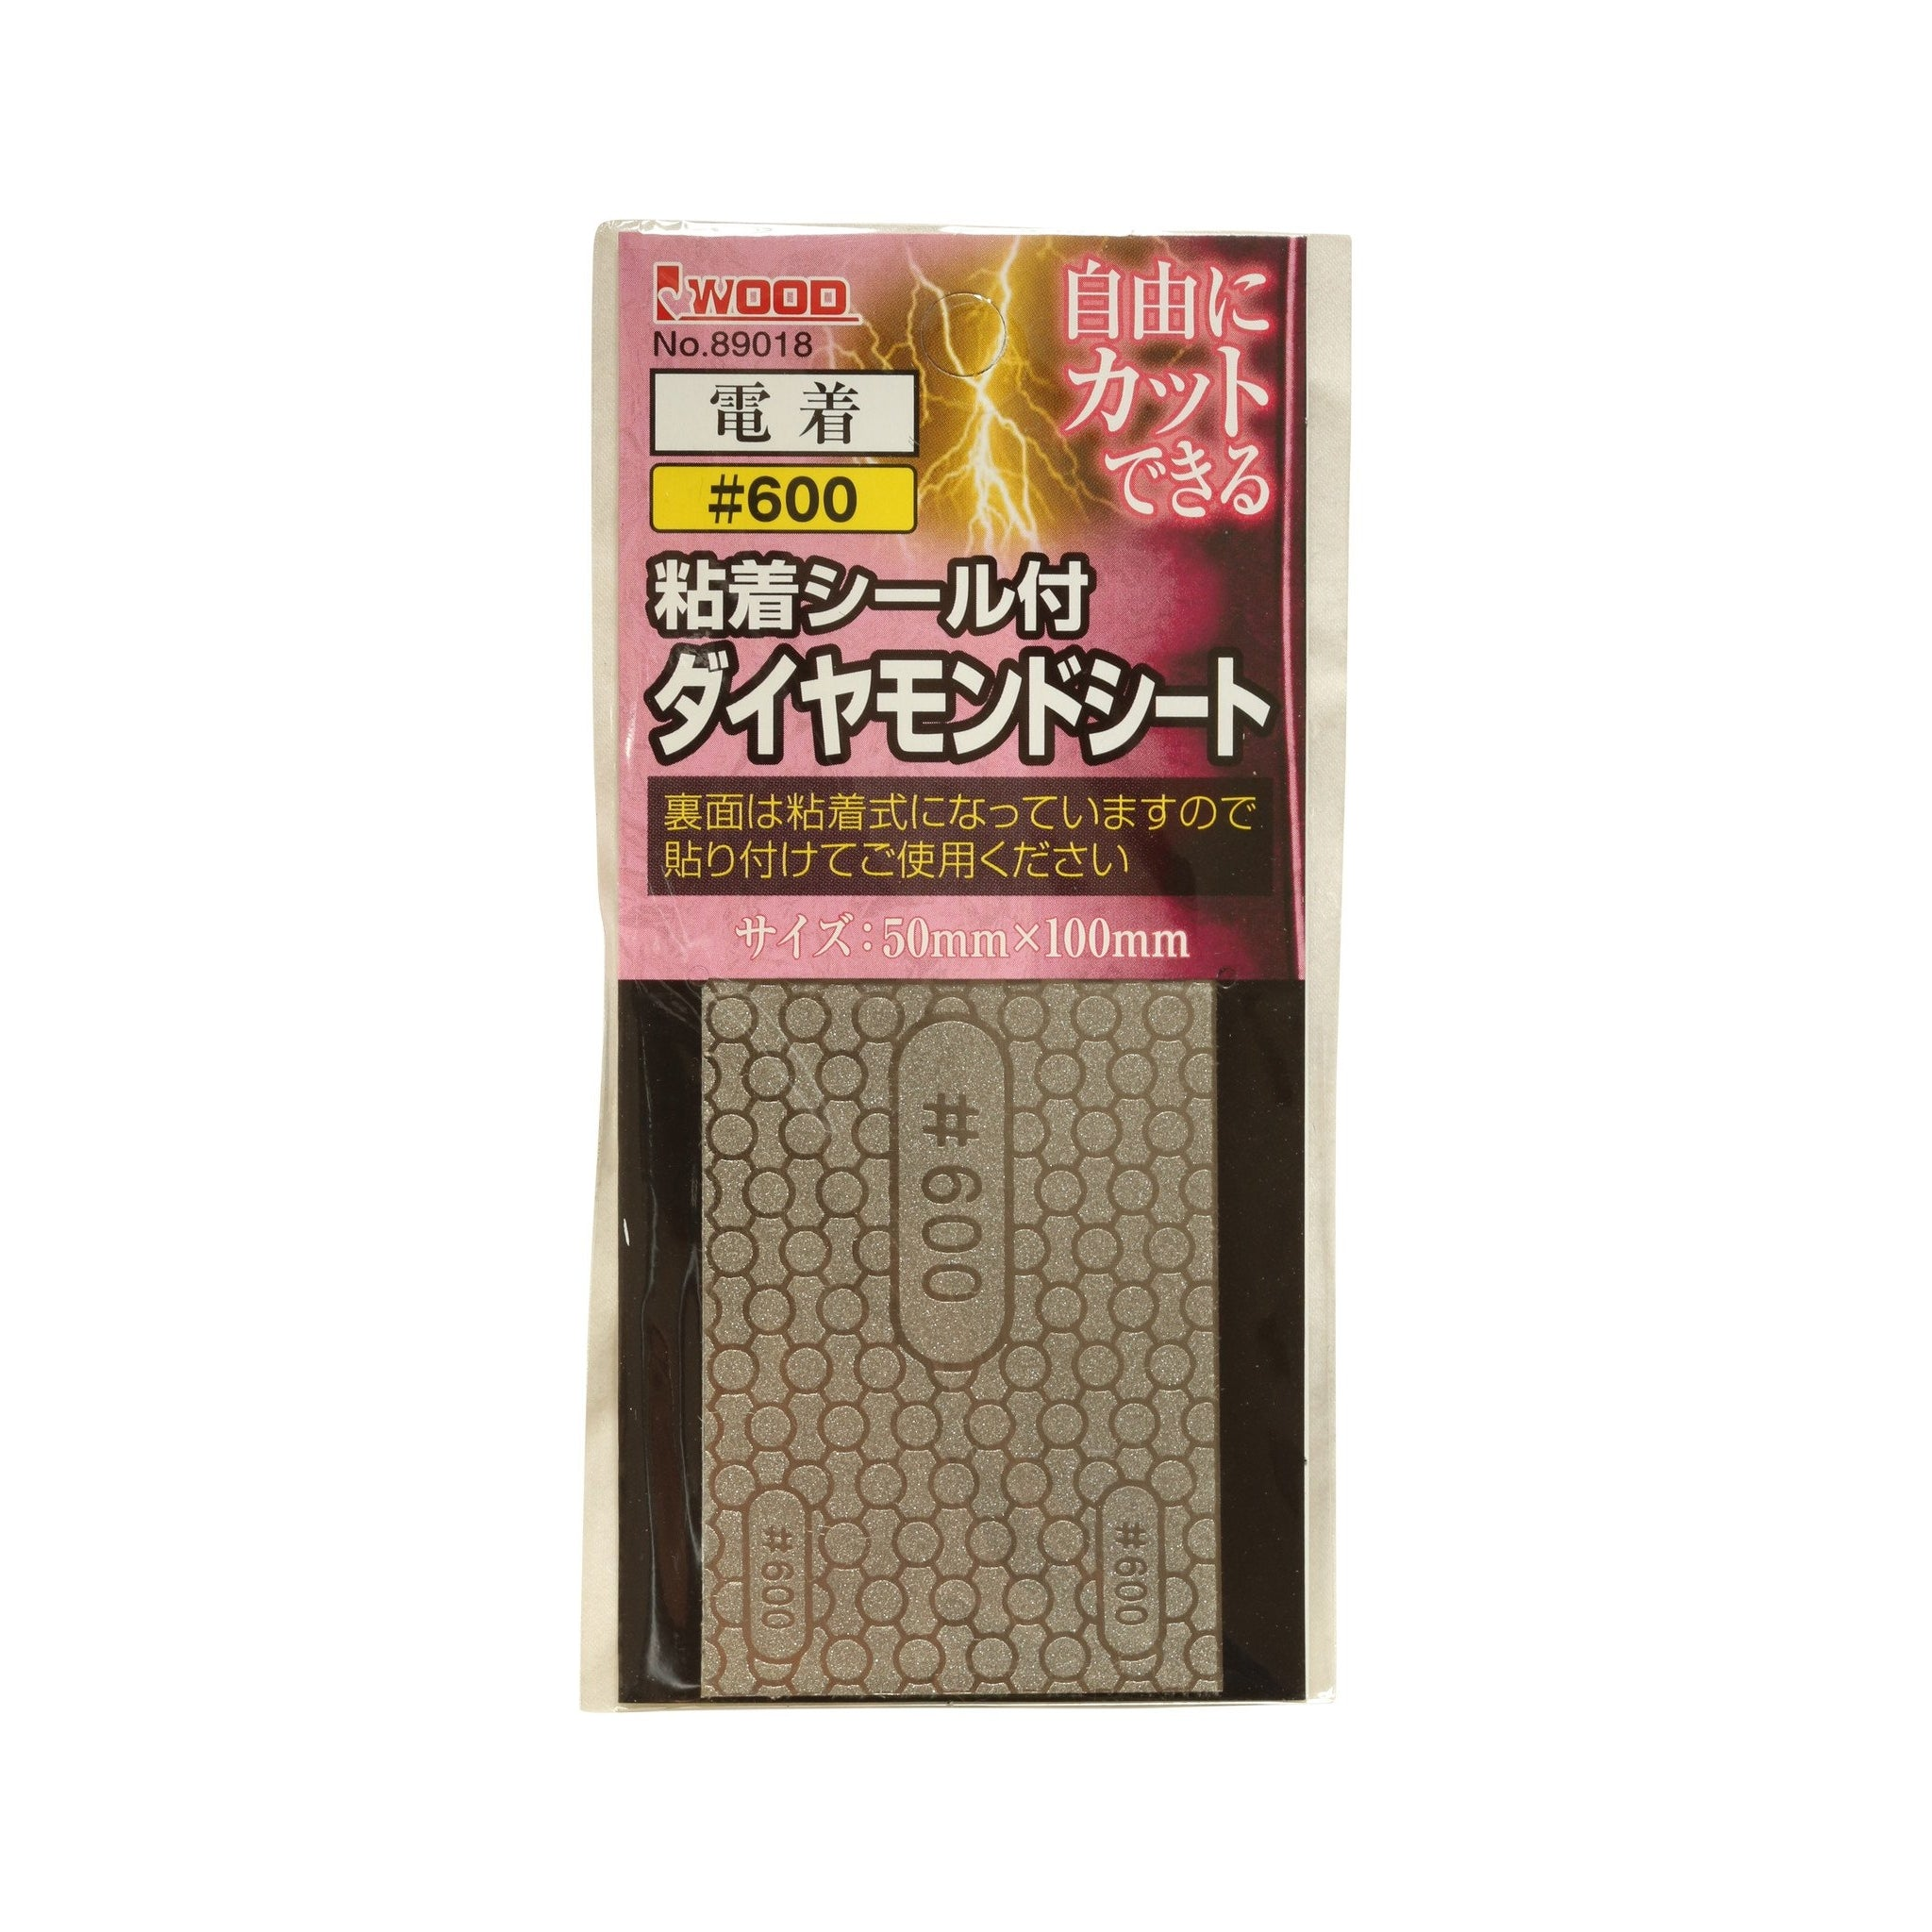 Diamond Sandpaper #600 - 1 piece - Japanese Tools Australia